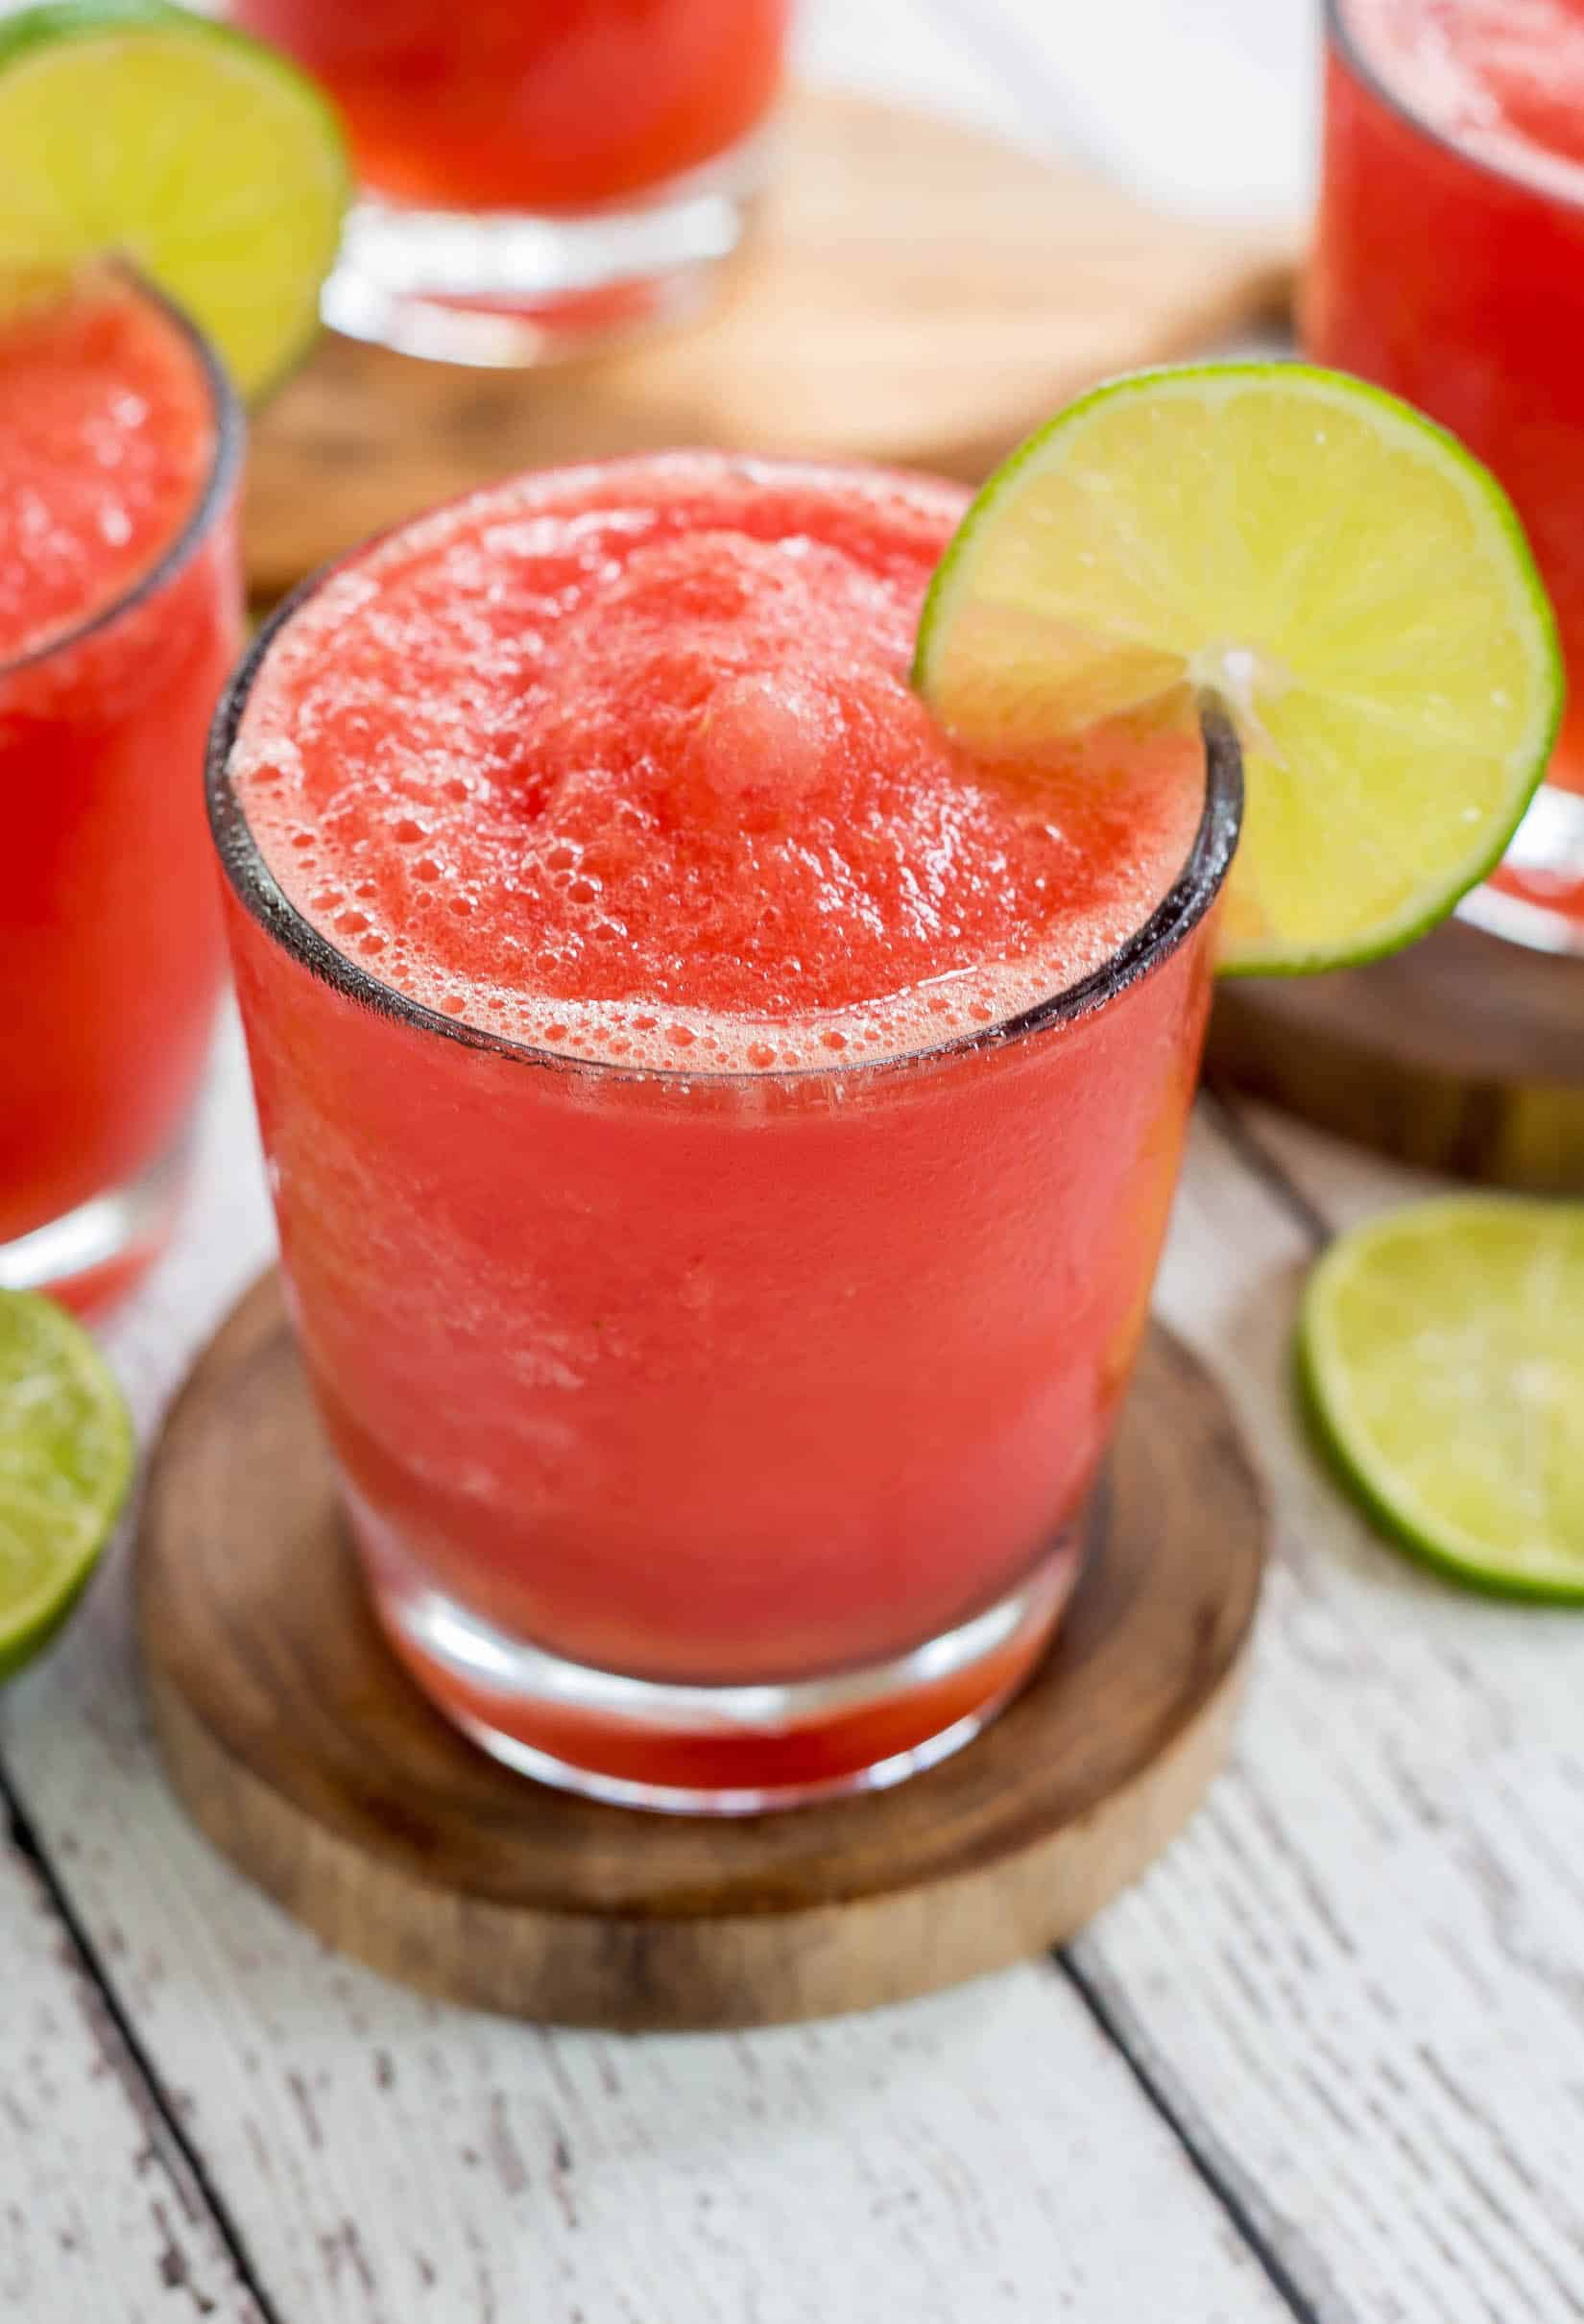 Watermelon Lime Slushies - Super easy, fresh and delicious watermelon lime slashes made at home!